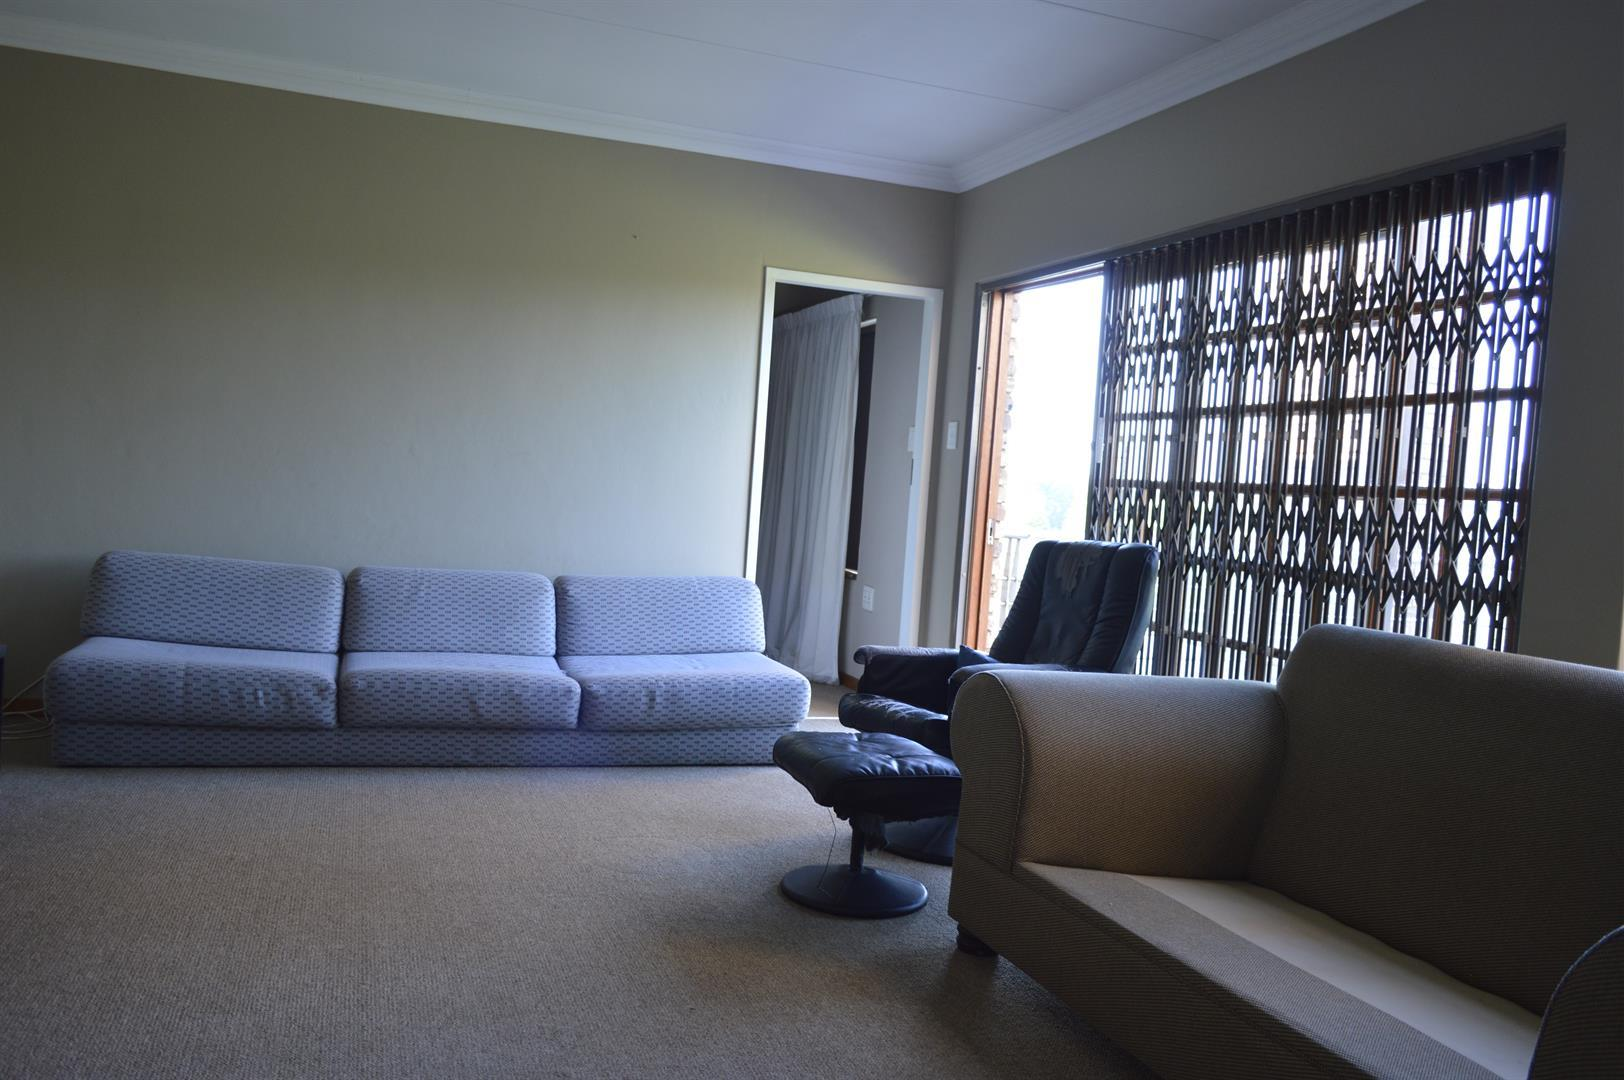 Raslouw A H property for sale. Ref No: 13442161. Picture no 19